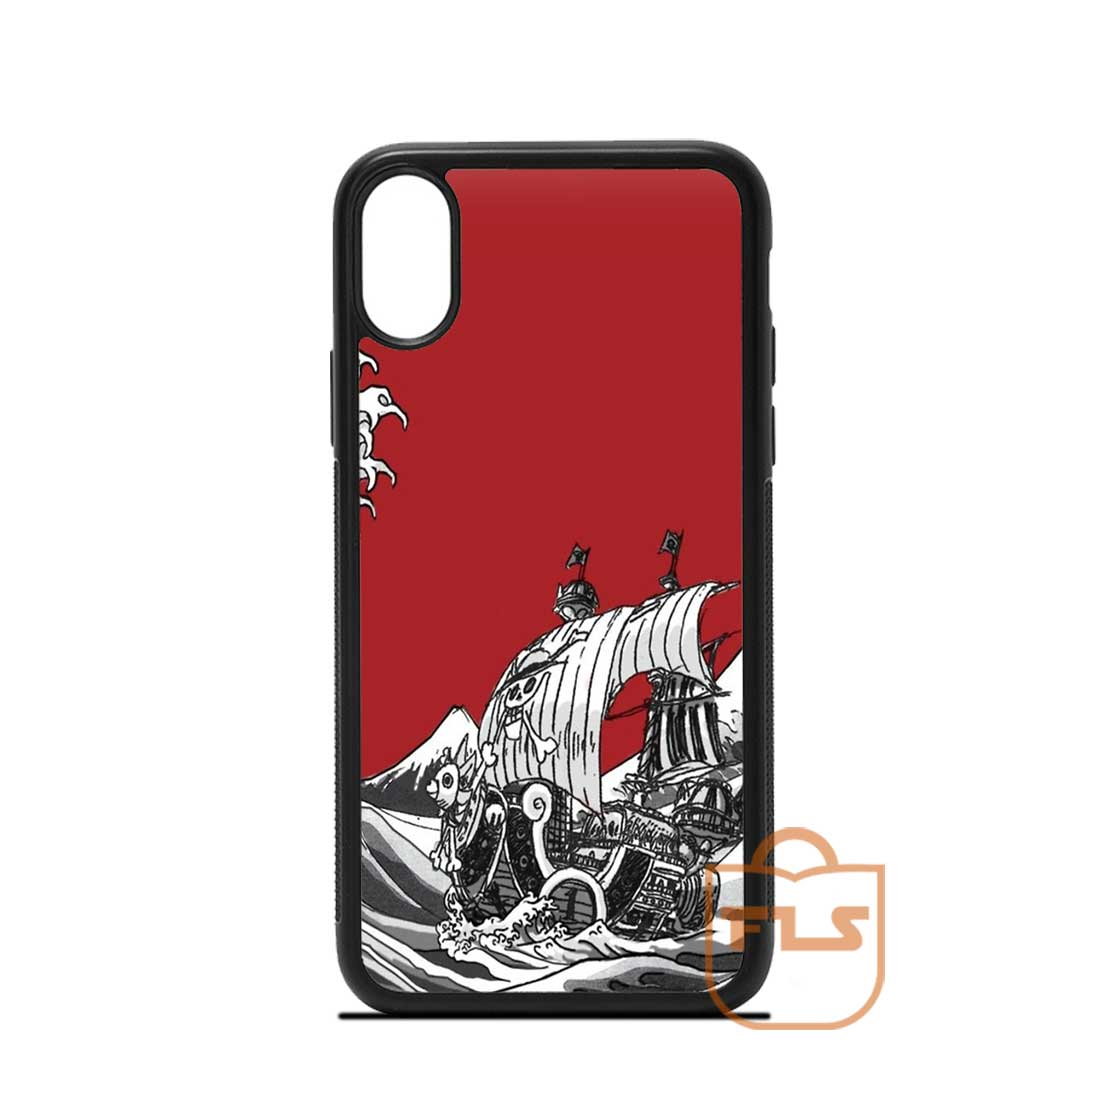 The Great Wave Red One Piece iPhone Case 7/7 Plus,8/8 Plus,X,XS,XR,XS,Max